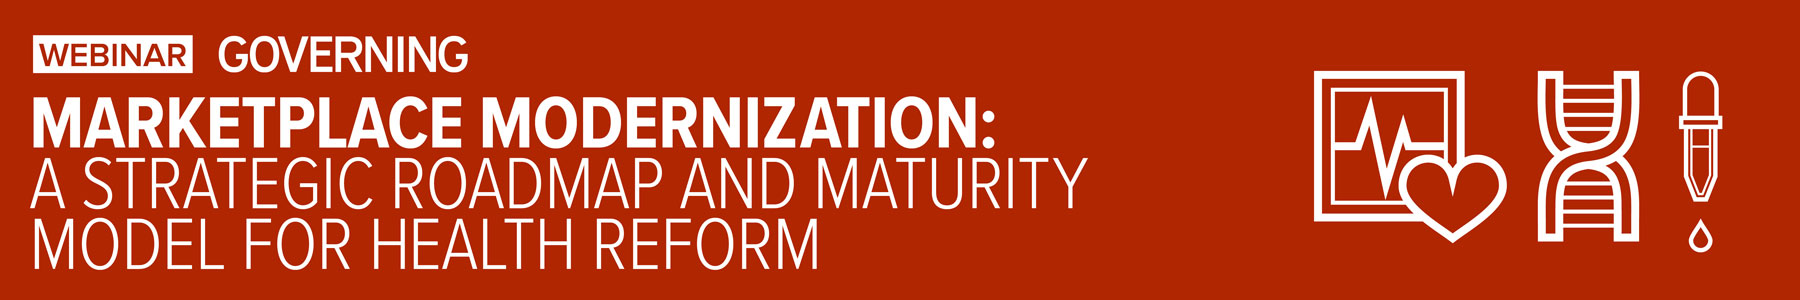 Marketplace Modernization: A Strategic Roadmap and Maturity Model for Health Reform